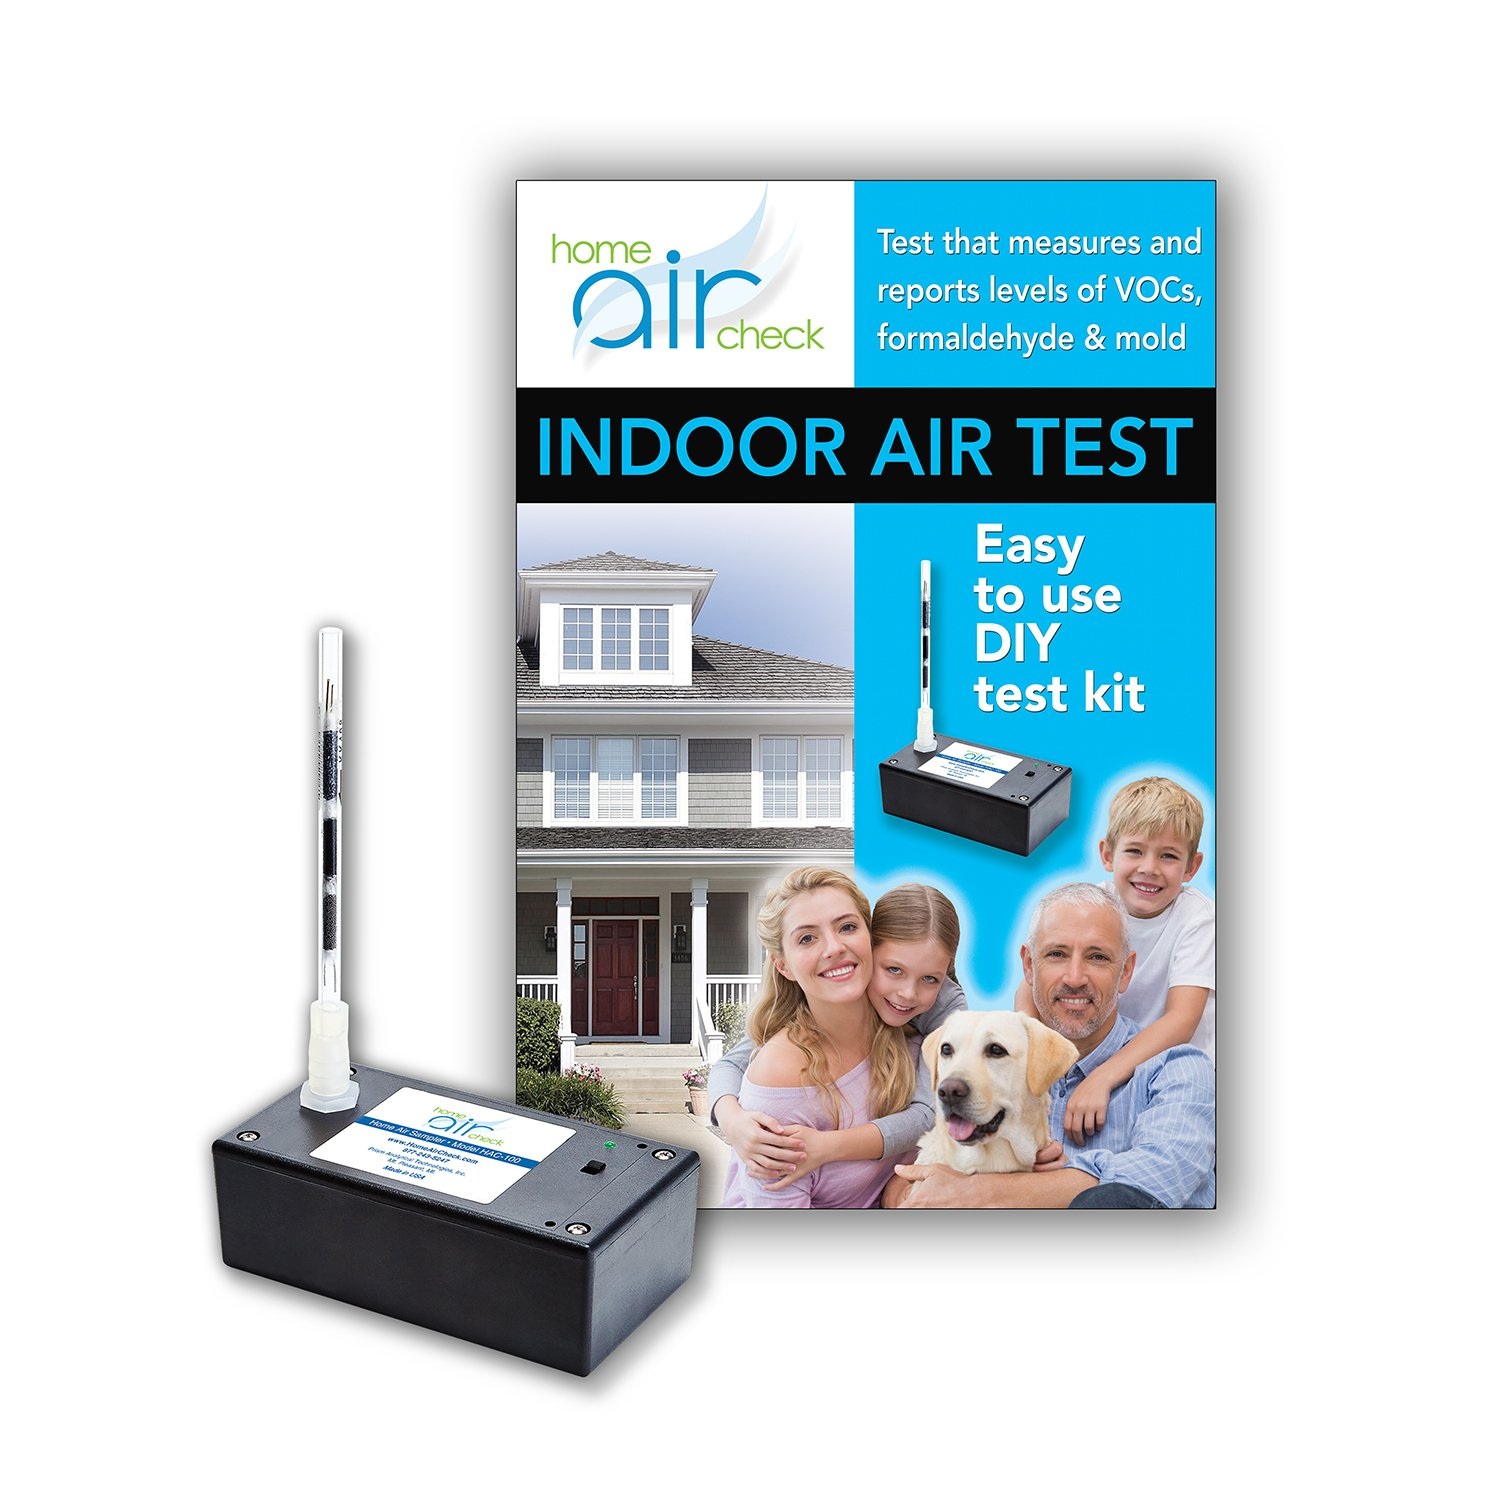 VOCs, Active Mold, & Formaldehyde Tests - Indoor Air Quality by Home Air Check by Home Air Check